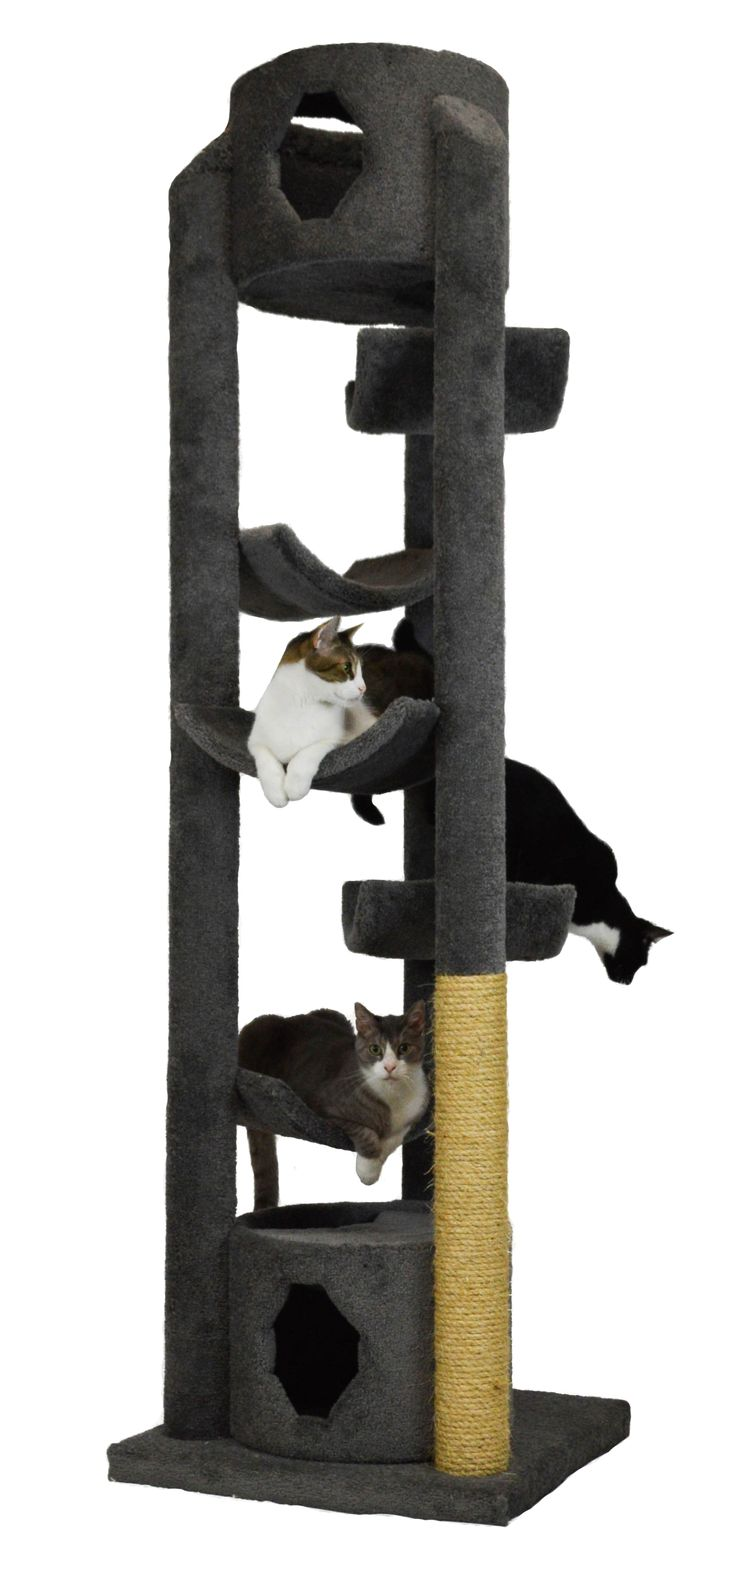 Molly And Friends Extra Large Cat Furniture Comes In A Variety Of Carpeted  Or Sisaled Shapes, Sizes And Colors! Mix And Match To Fit Your Decor!